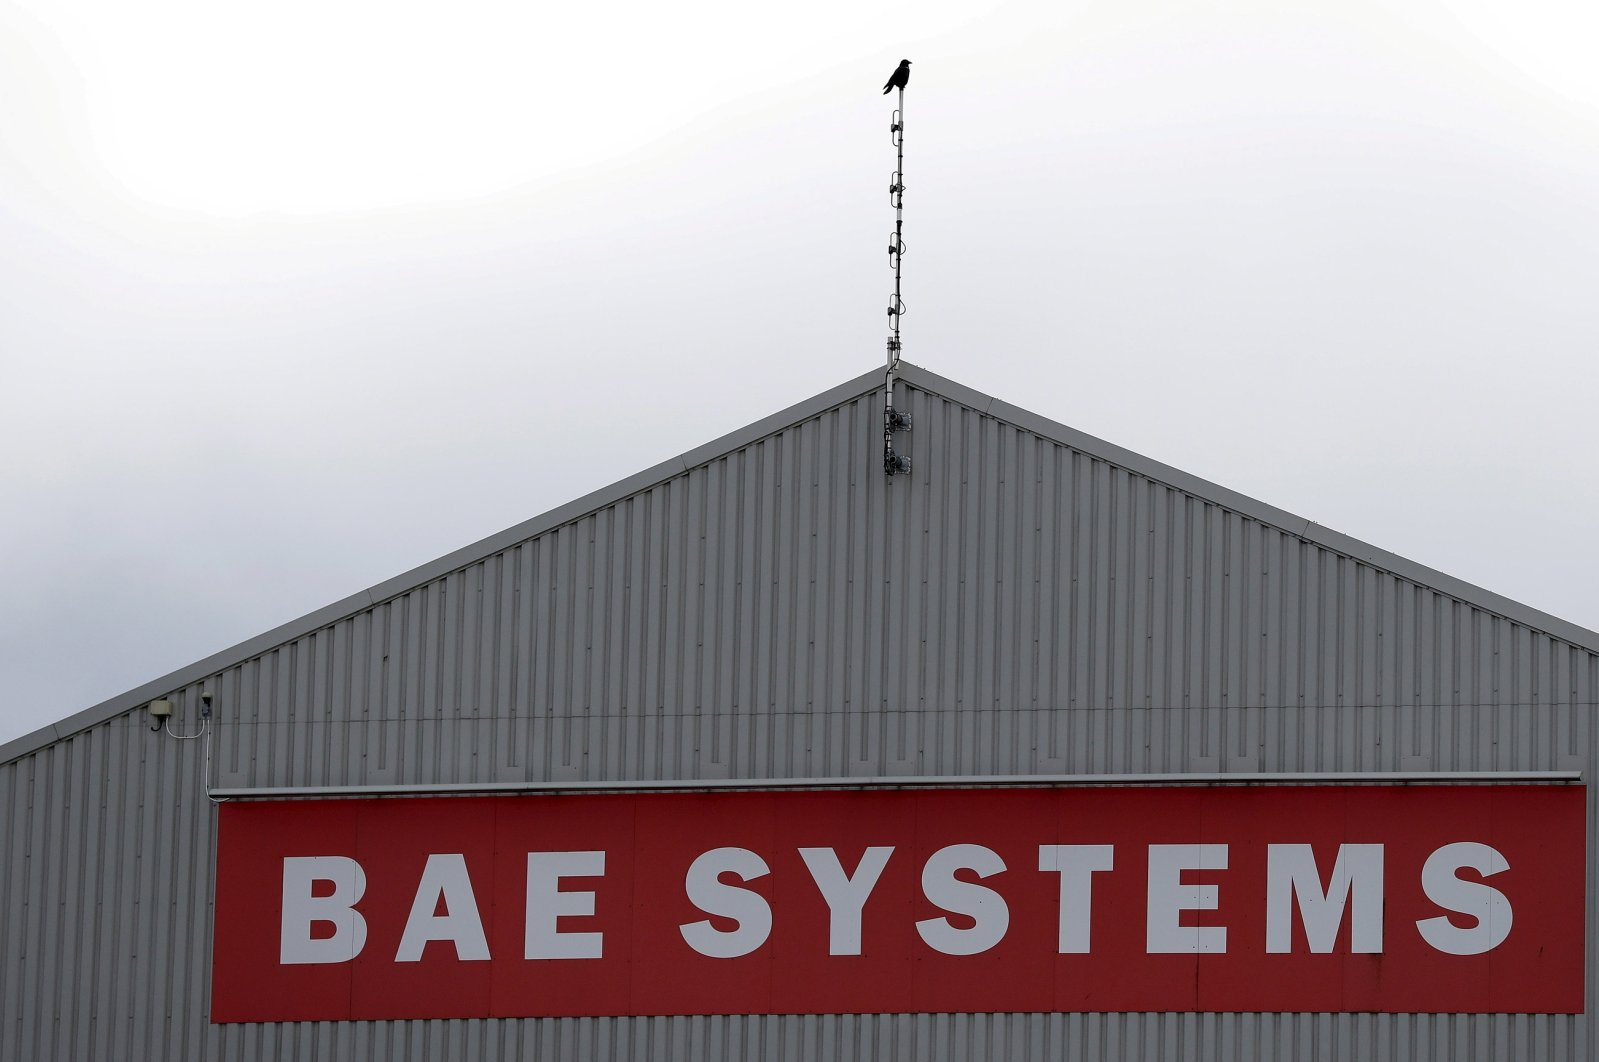 A sign adorns a hangar at the BAE Systems facility at Salmesbury, near Preston, northern England, March 10, 2016.  (Reuters Photo)